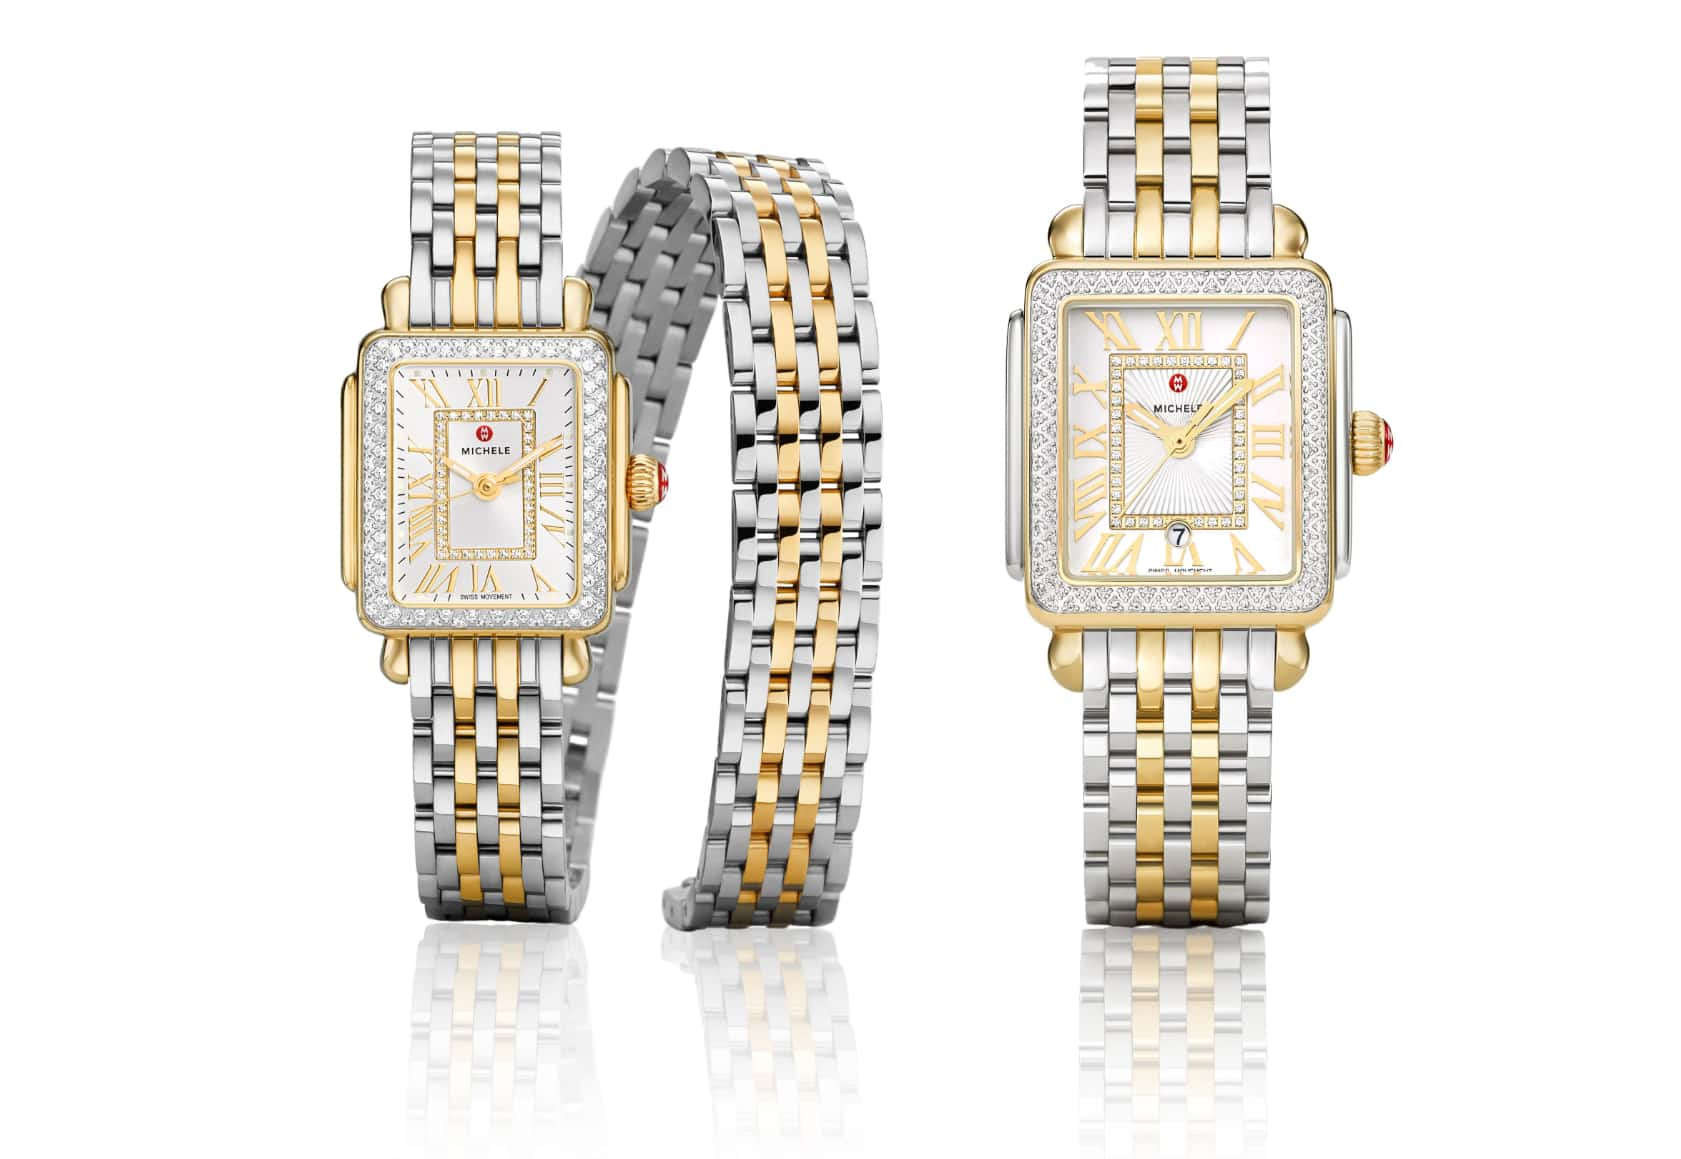 Deco Madison and Deco Madison Mini double-wrap watches in two-tone stainless and 18K gold.